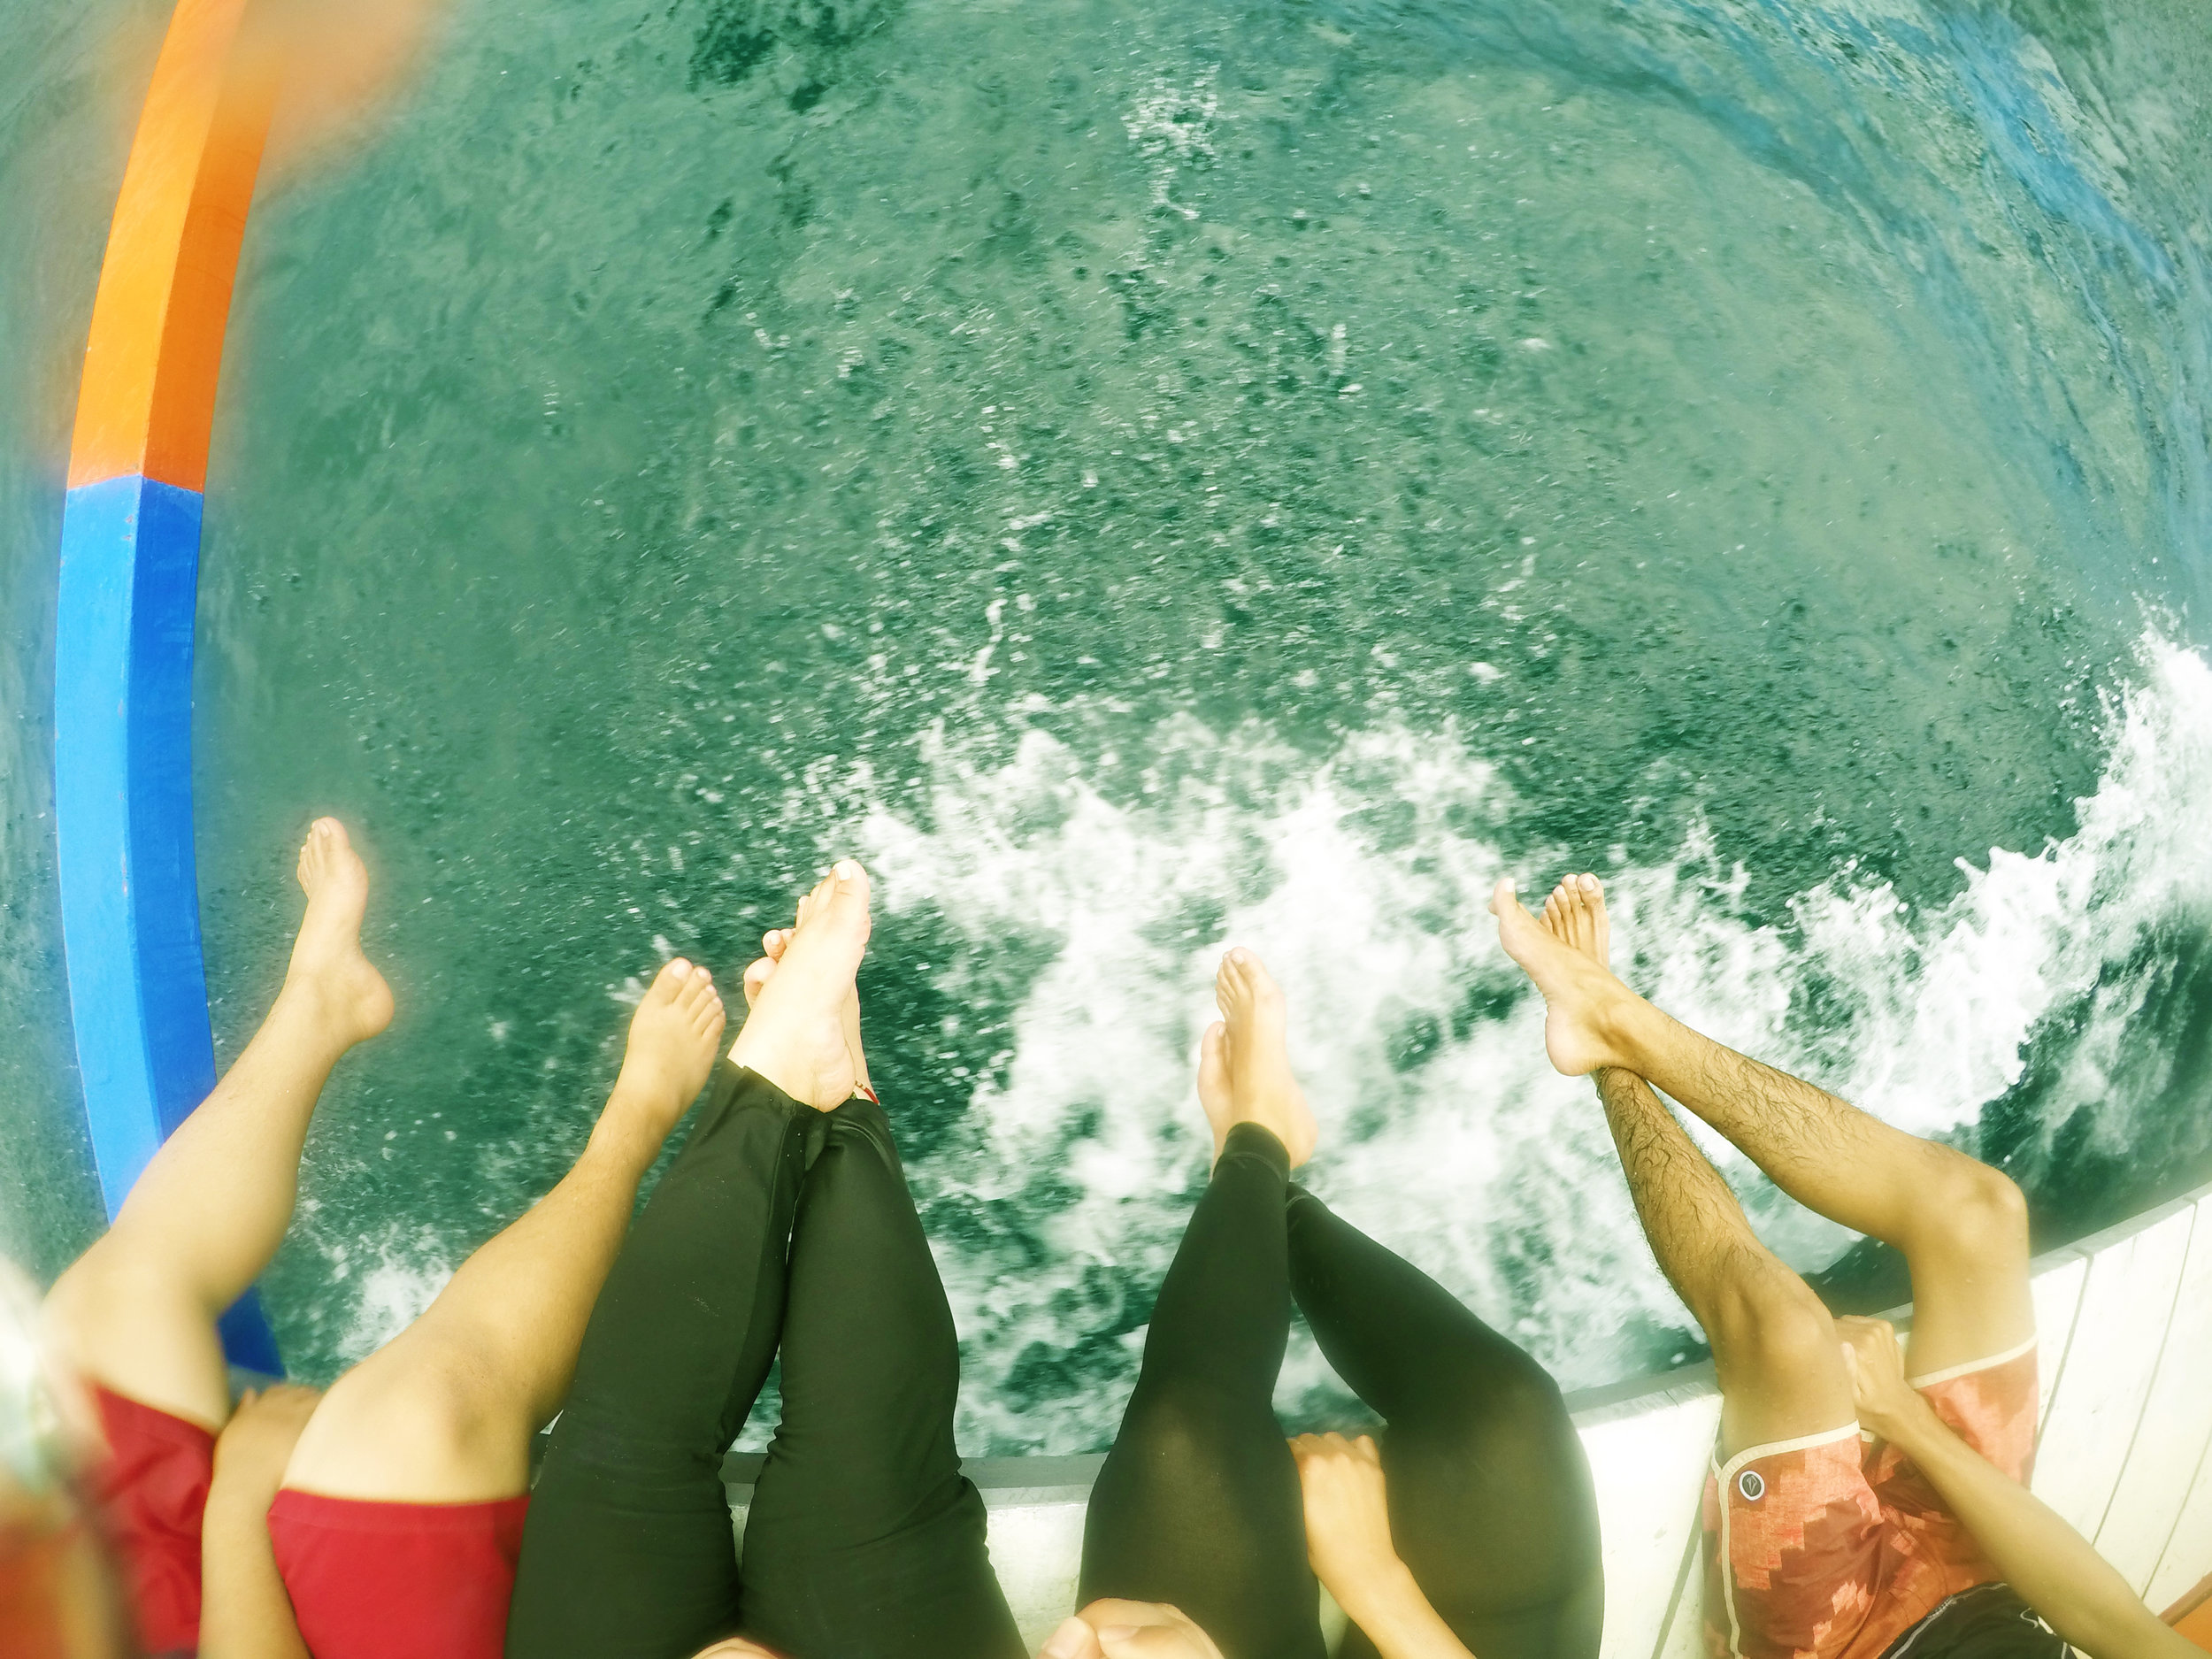 Probably the best part of riding the boat is when you and your friends can dip your feet into the splashing waves. Photo by Bianne Yee